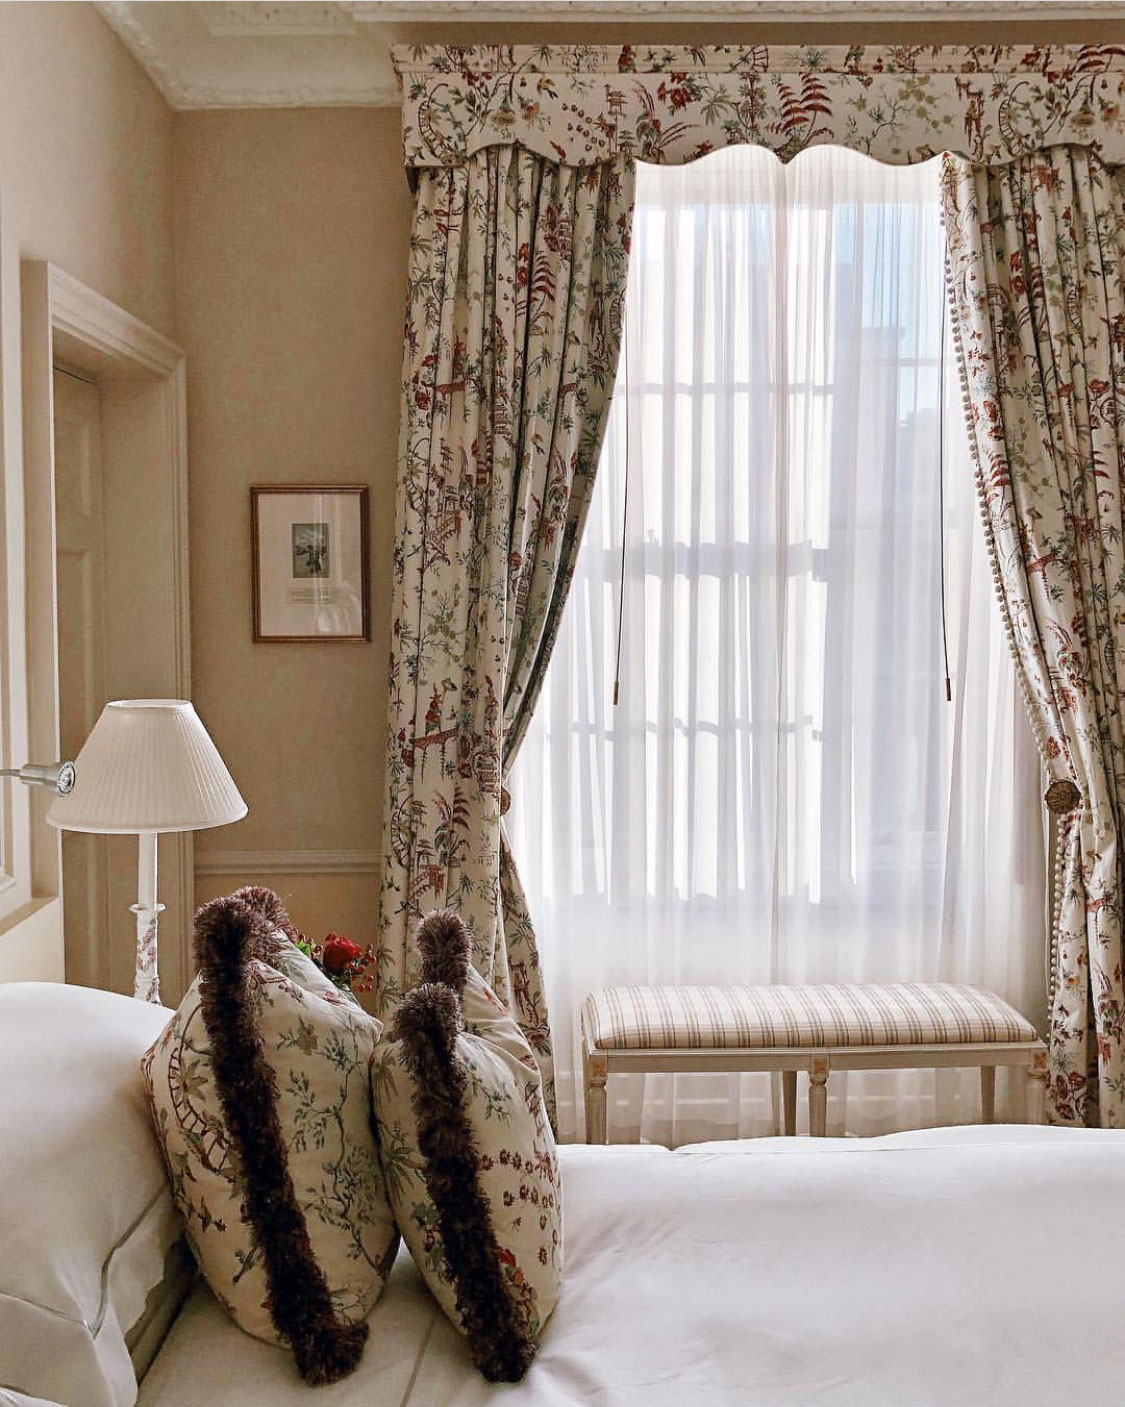 Weekday Wanderlust | Places: The Merrion Hotel Dublin